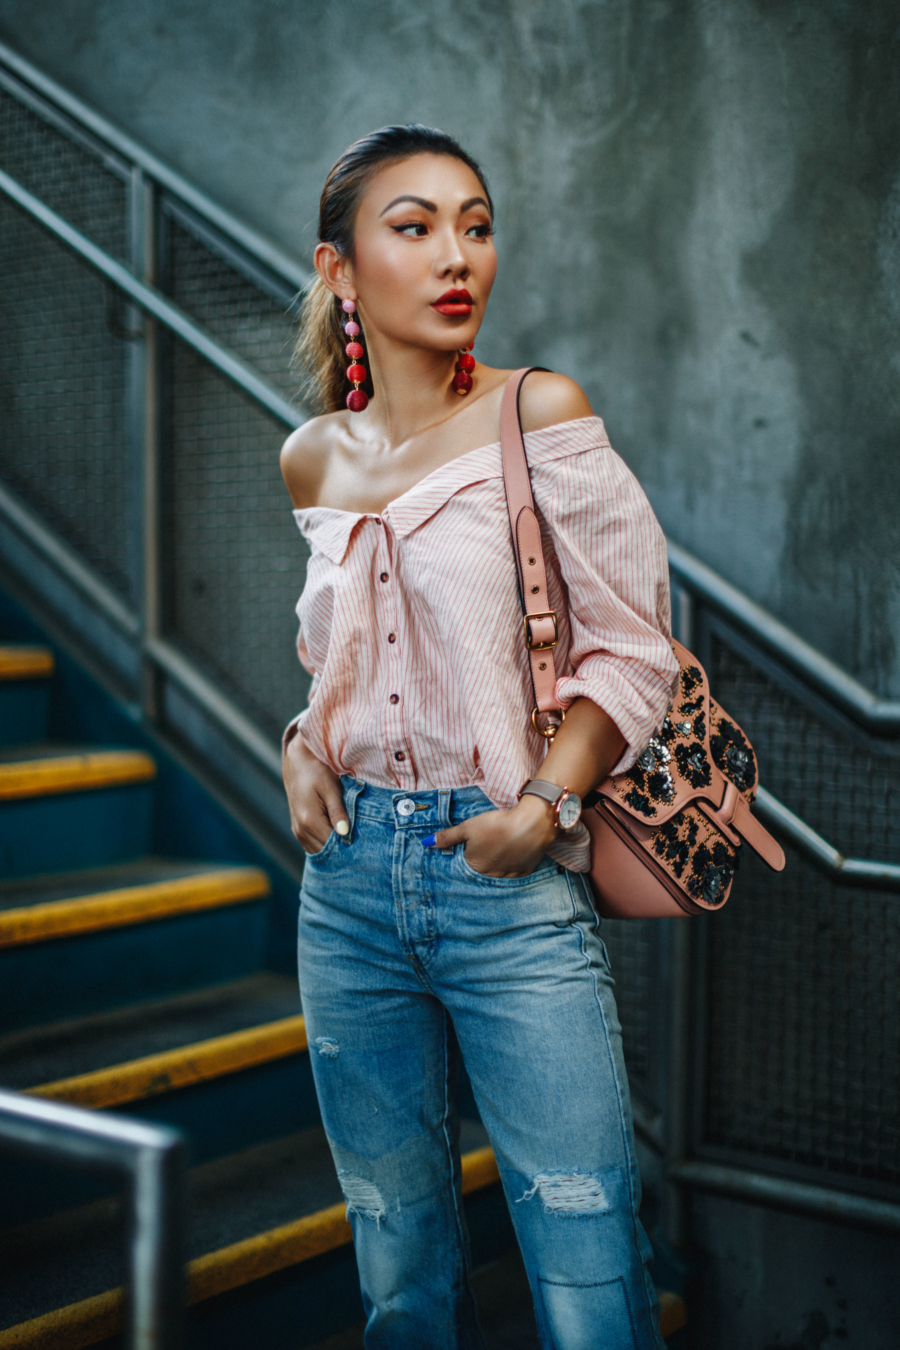 Off The Shoulder Top and Bonbon Earrings - Embellished Pieces That Will Make Your Outfits Shine // NotJessFashion.com